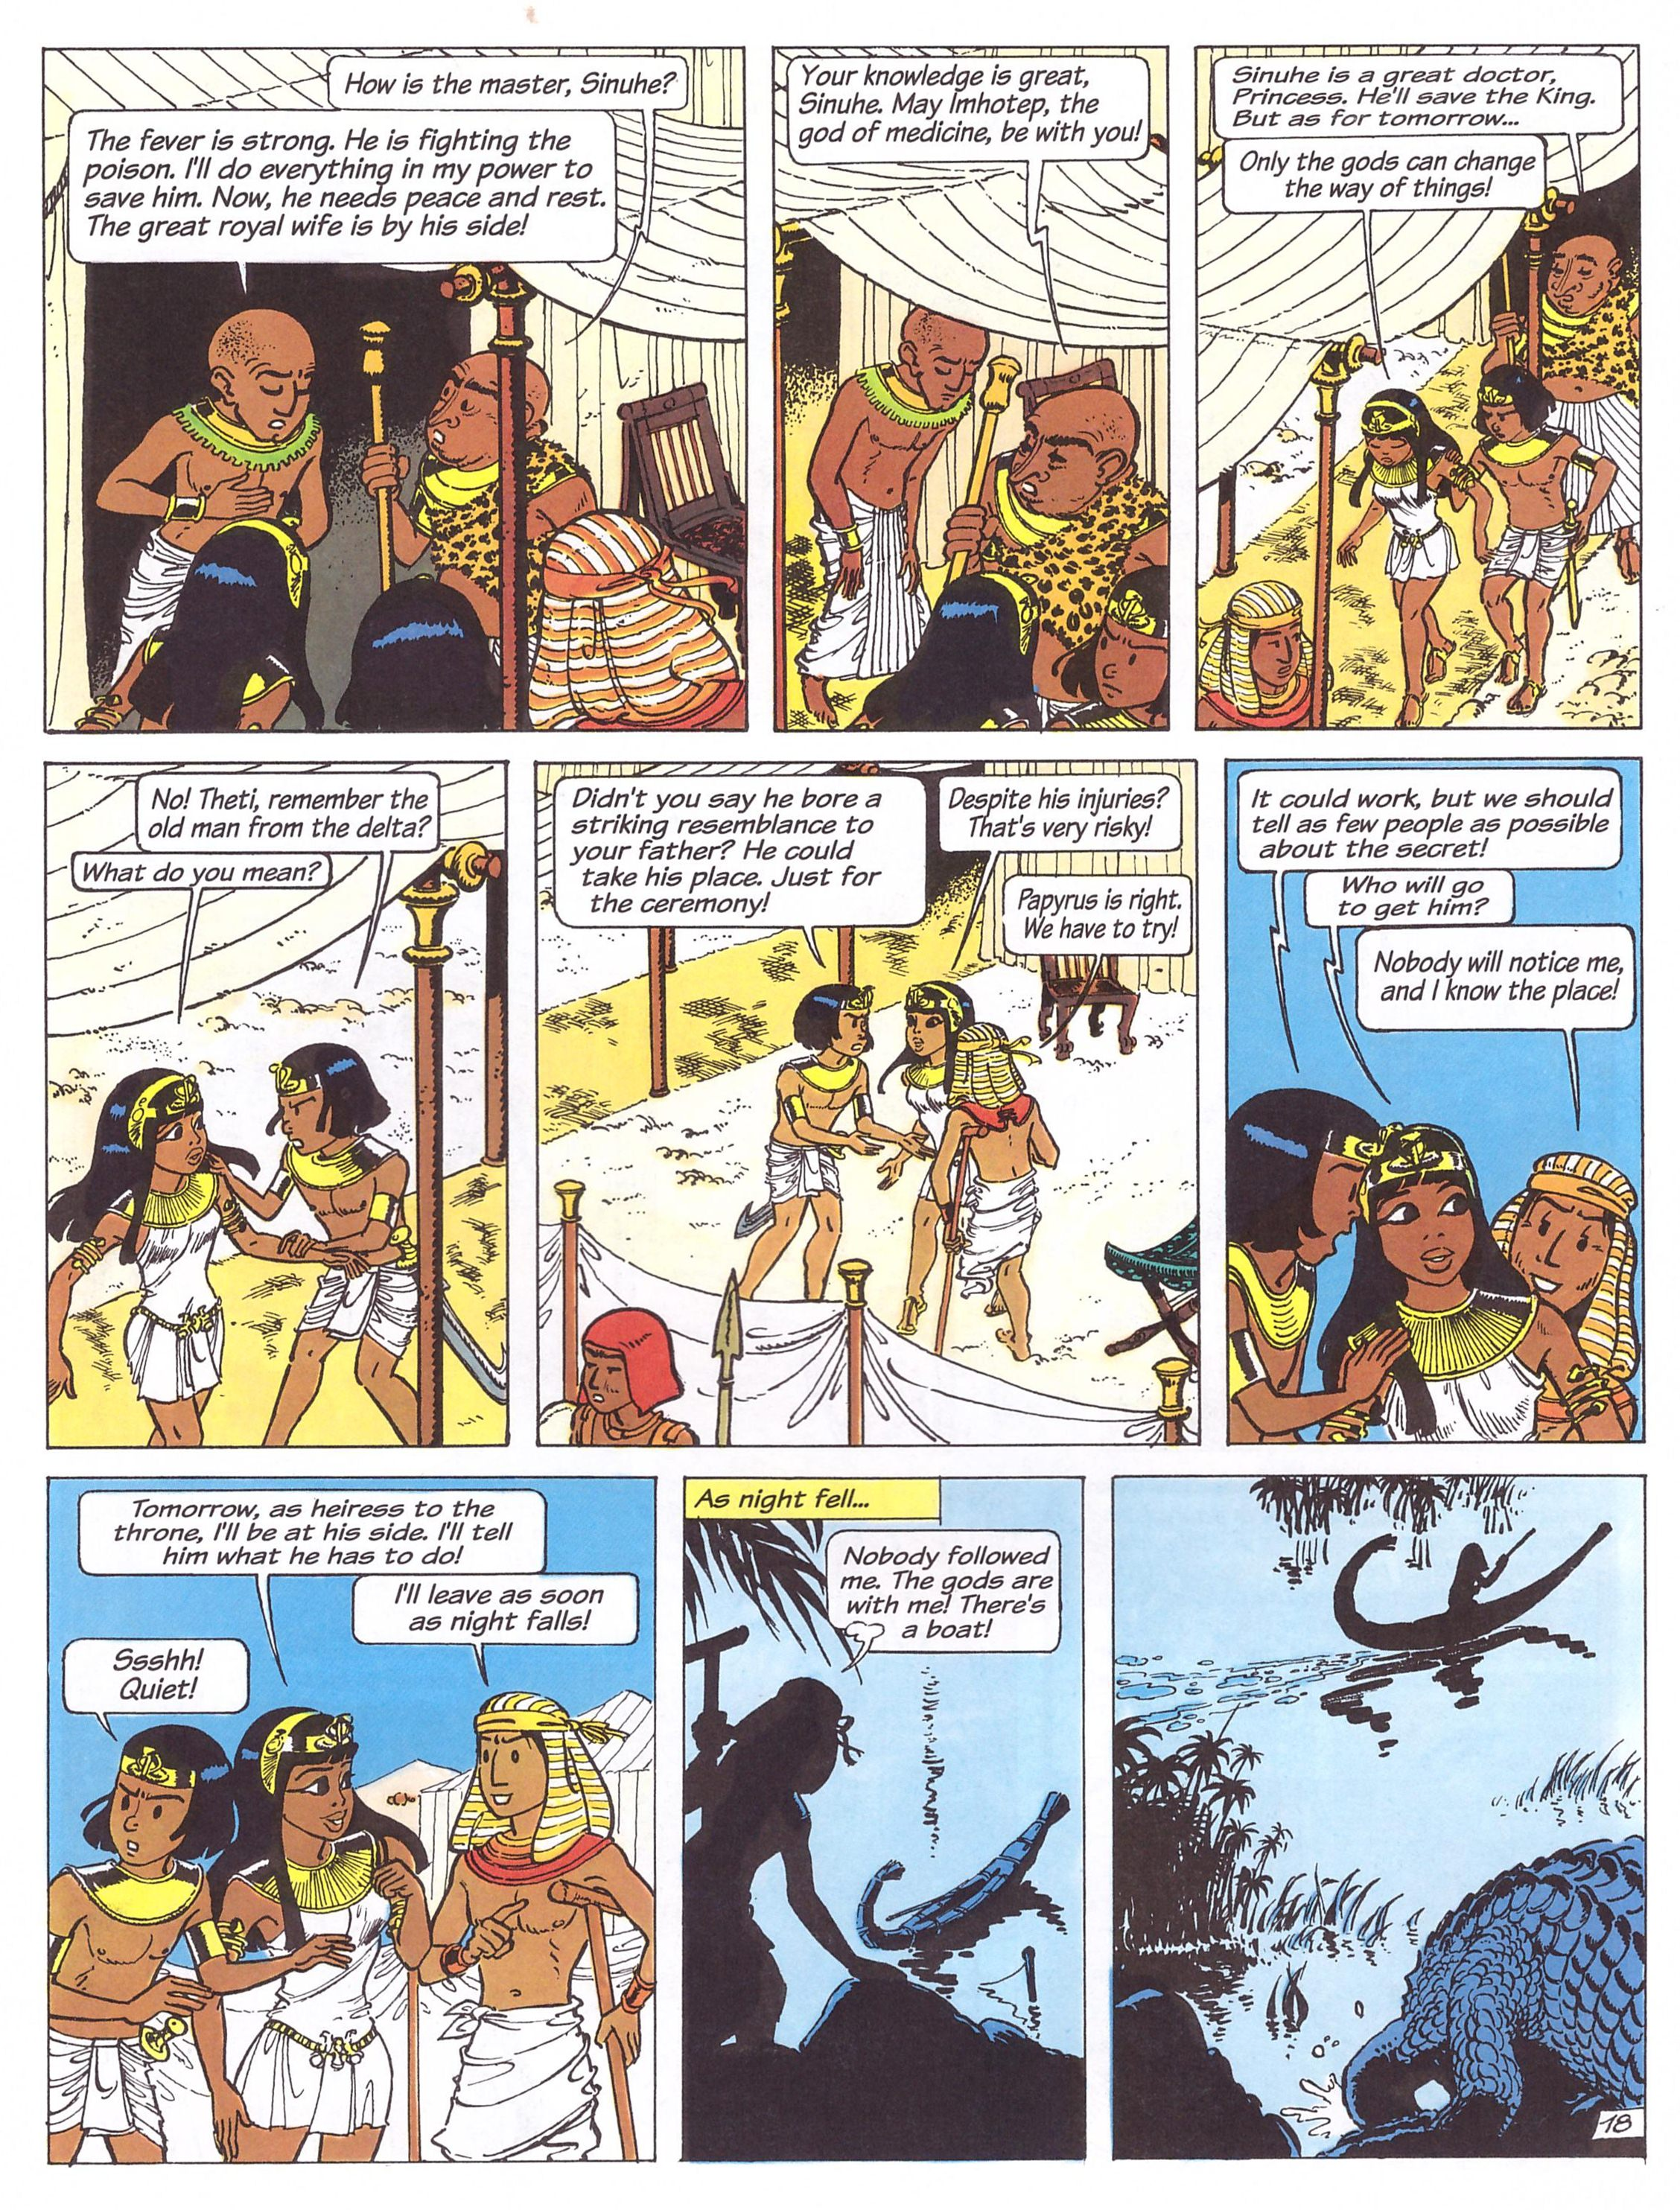 Papyrus Imhotep's Transformation review